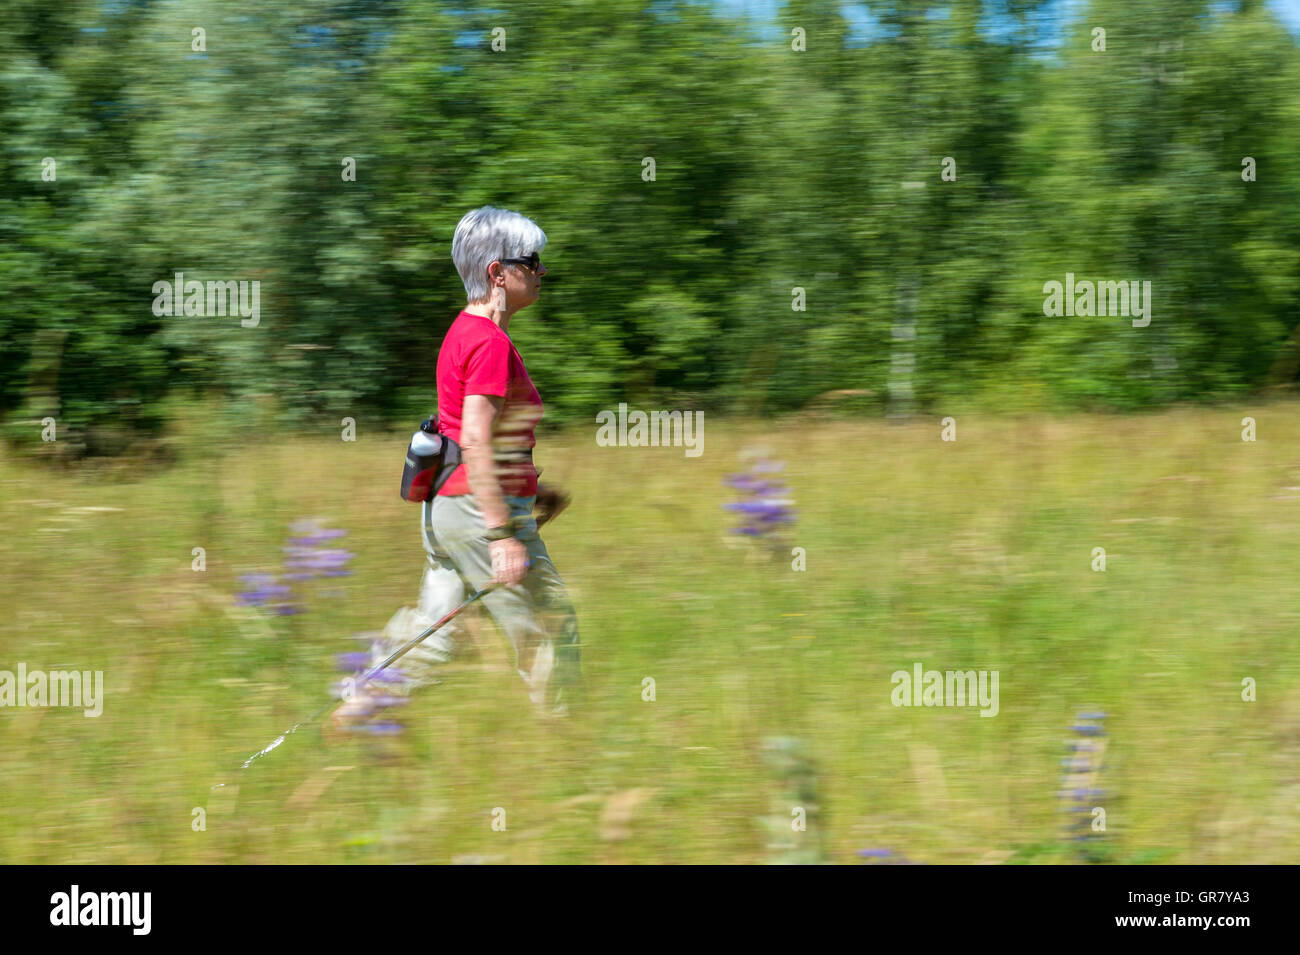 Senior In A Red Shirt Runs On A Green Lawn. - Stock Image